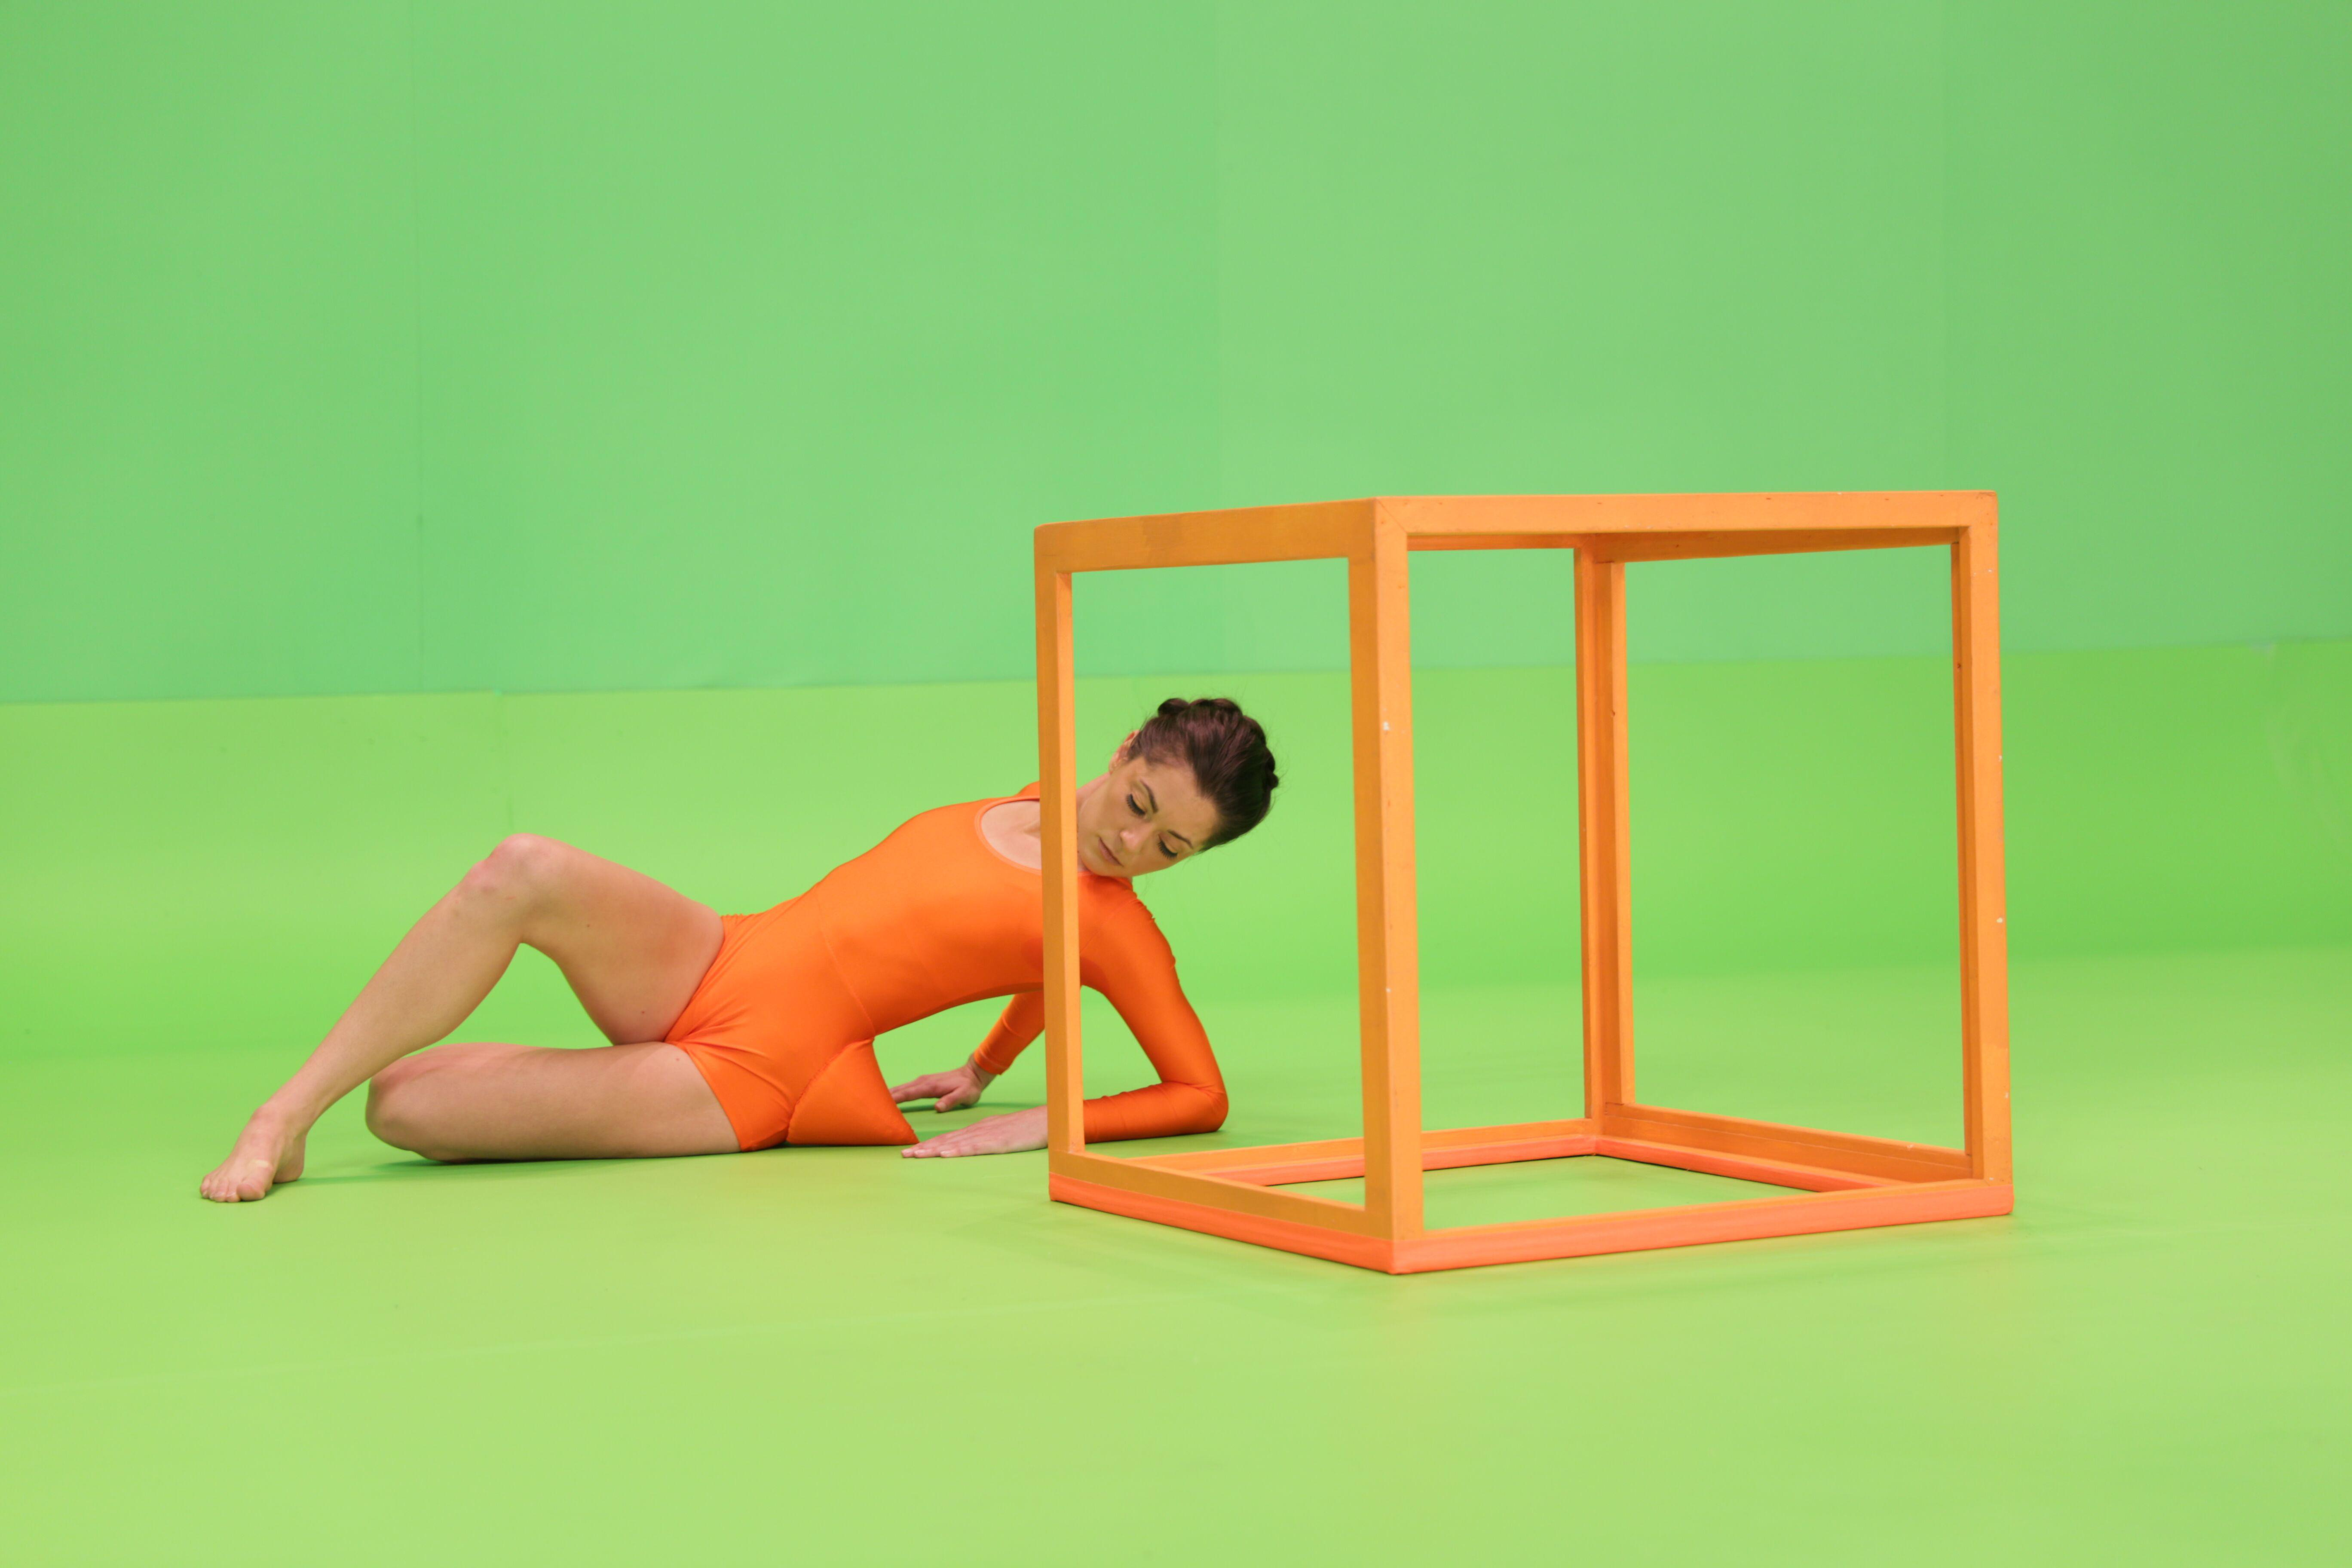 A dancer in orange leotard arches her back and rests on her elbows behind an open cube sculpture and against a bright green background. Her left hip is accentuated by a sharp cone in the same orange of her leotard.